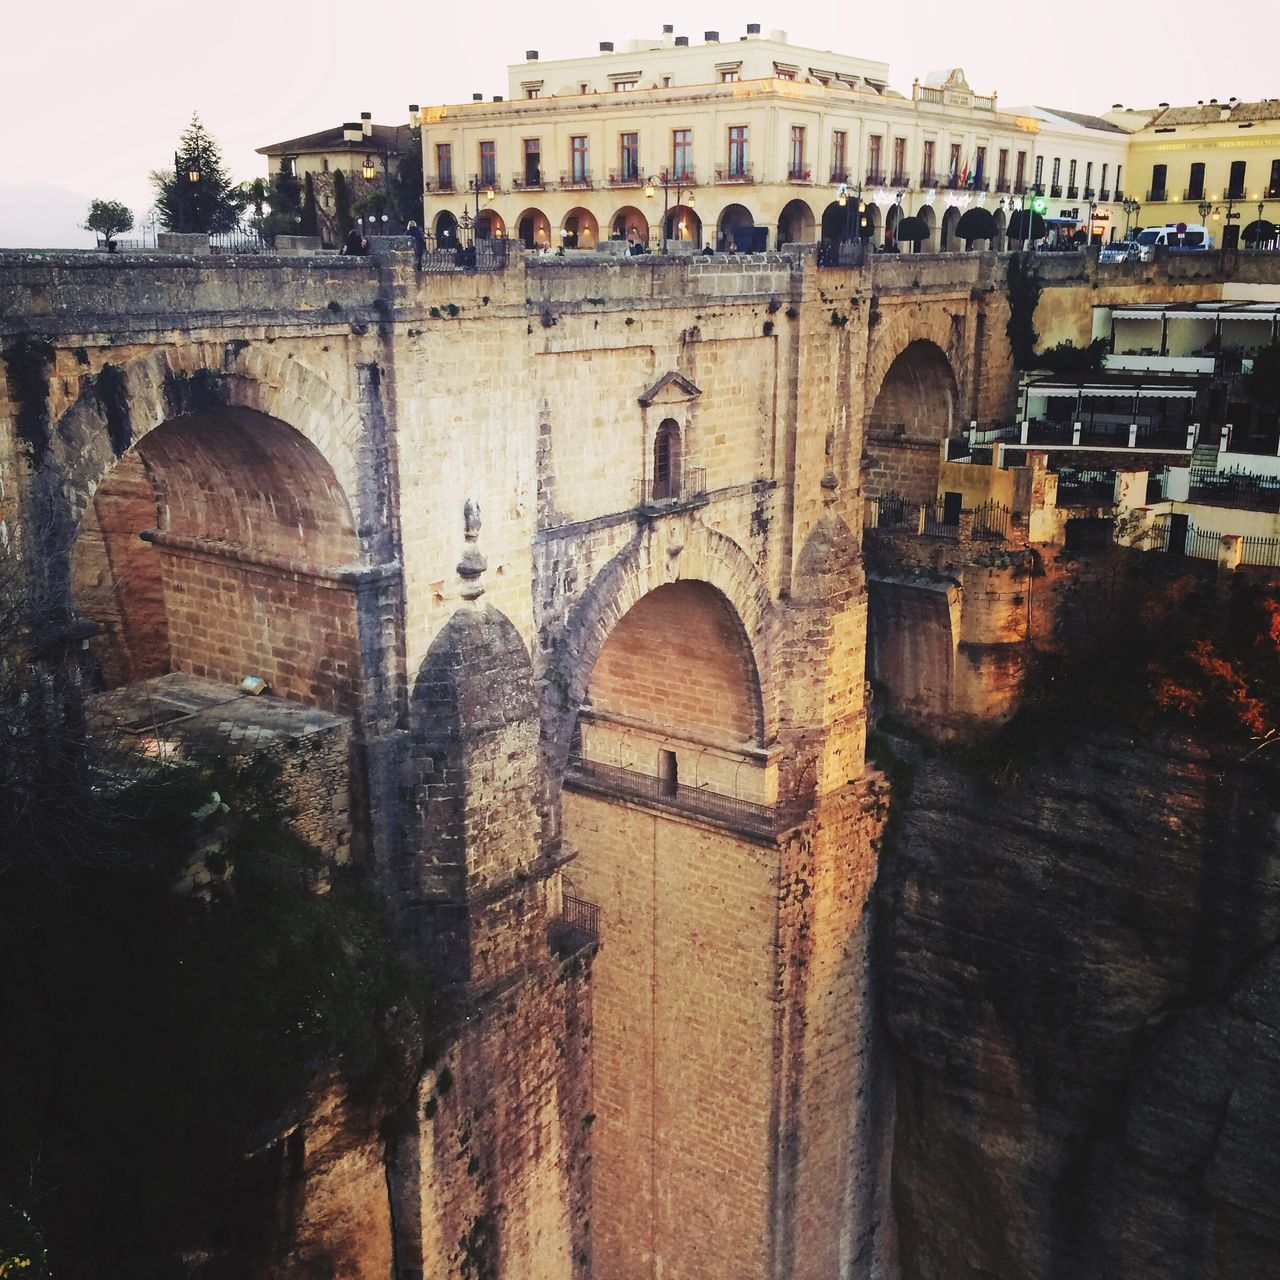 Ronda Spain Architecture Built Structure Travel Destinations Arch Building Exterior Cultures History Travel Tourism Ancient City Sky Amphitheater Outdoors Day Bridge - Man Made Structure No People Medieval